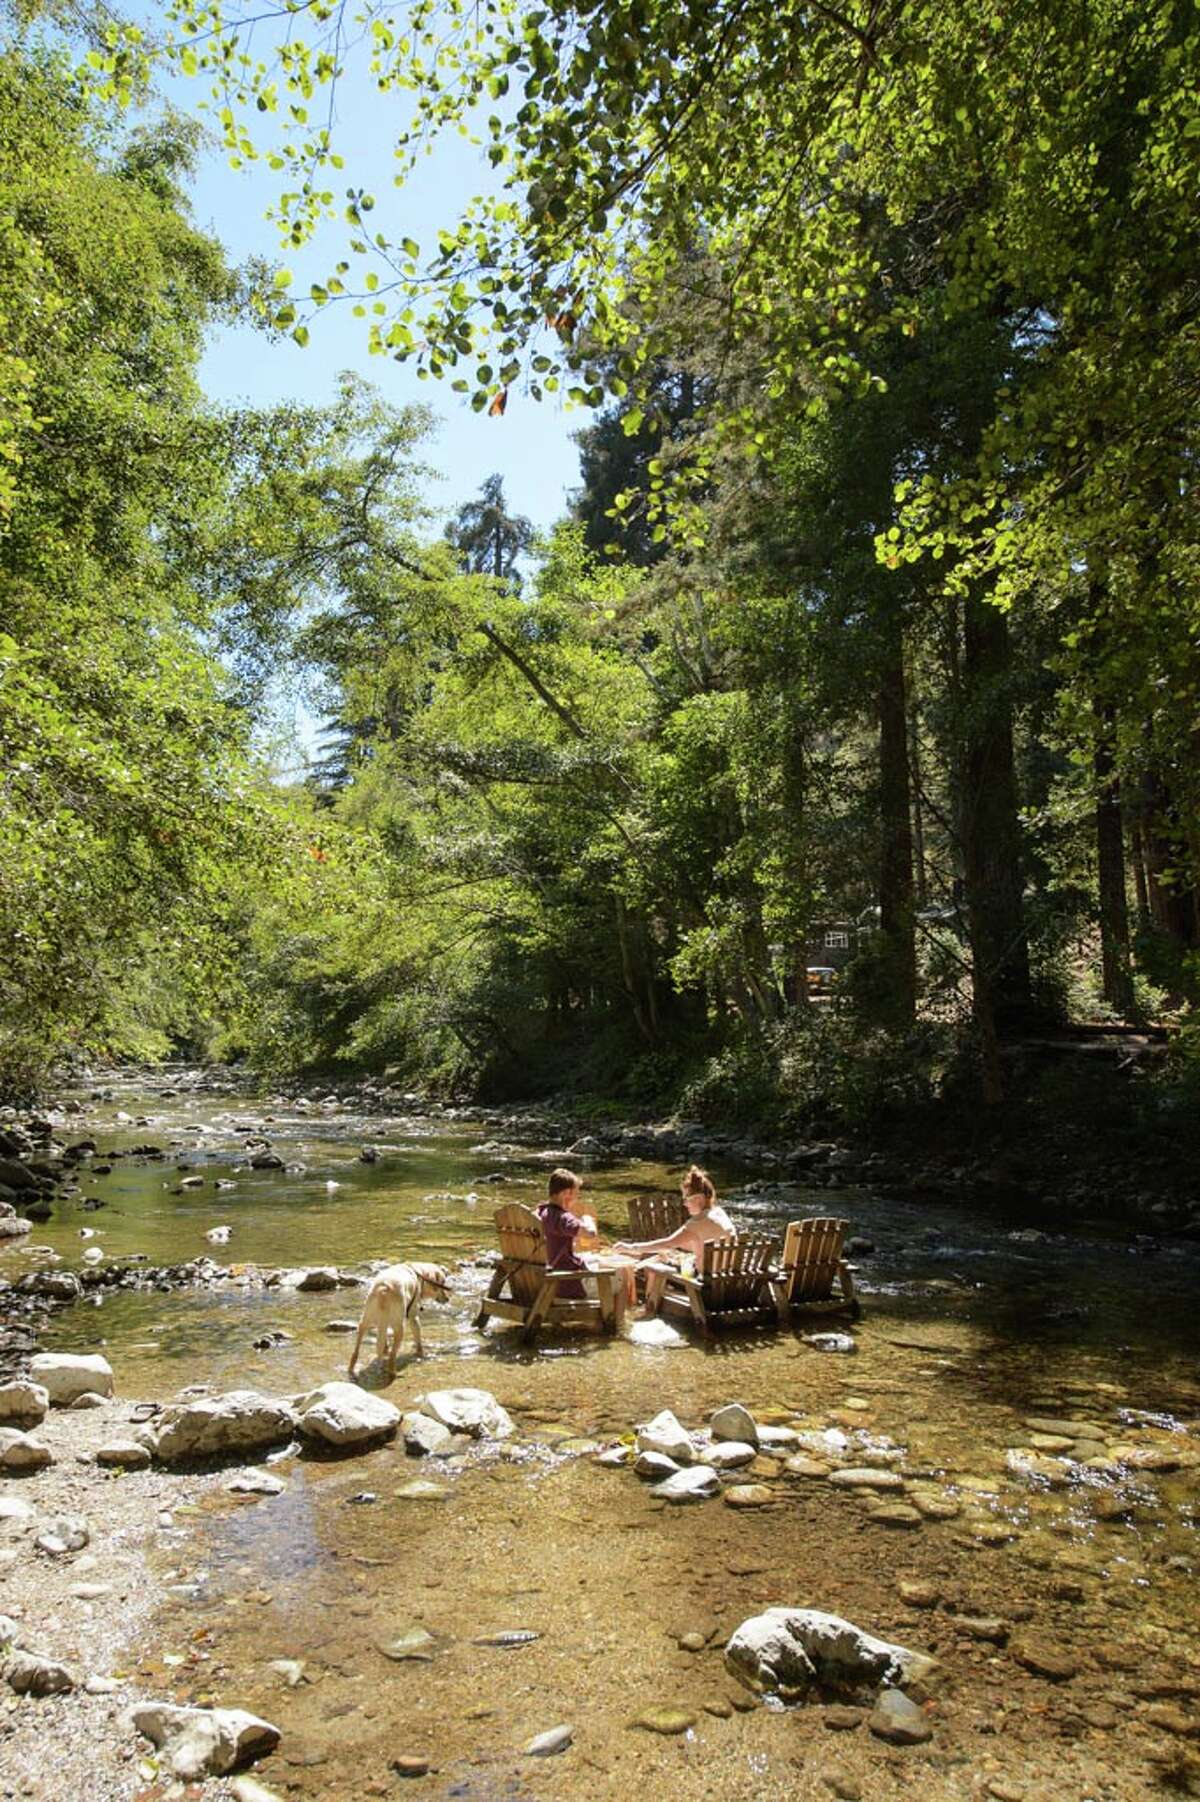 Big Sur River Inn: Its proxminity to the Big Sur River gives visitors an excuse to dip their toes in the water.